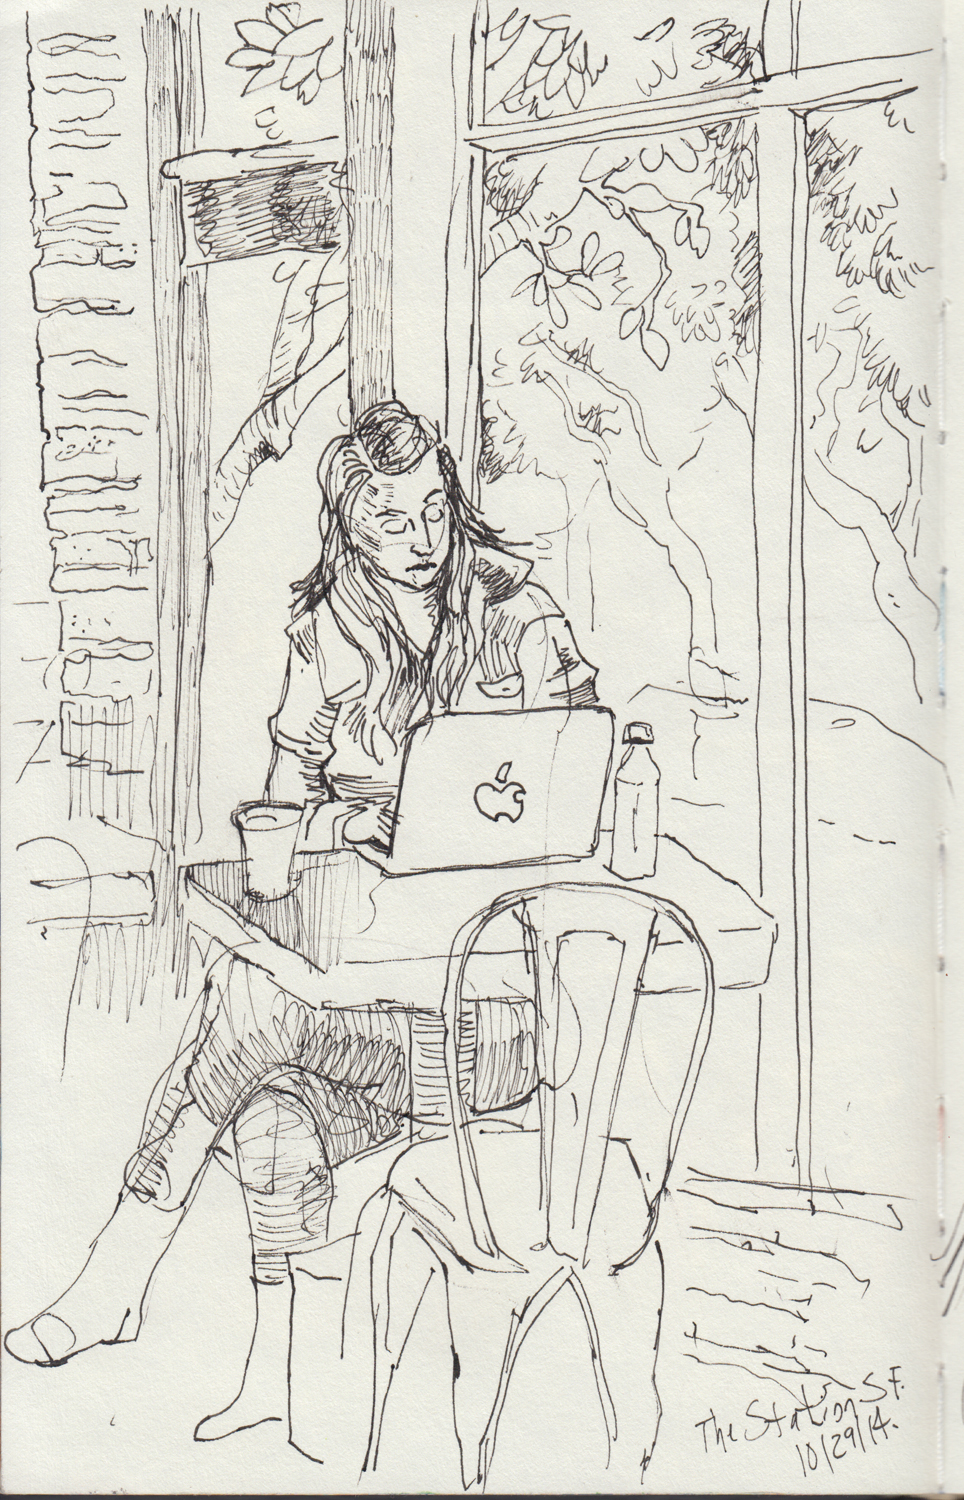 2014 - 10 - 29 - sketchbook - woman at coupa.jpg